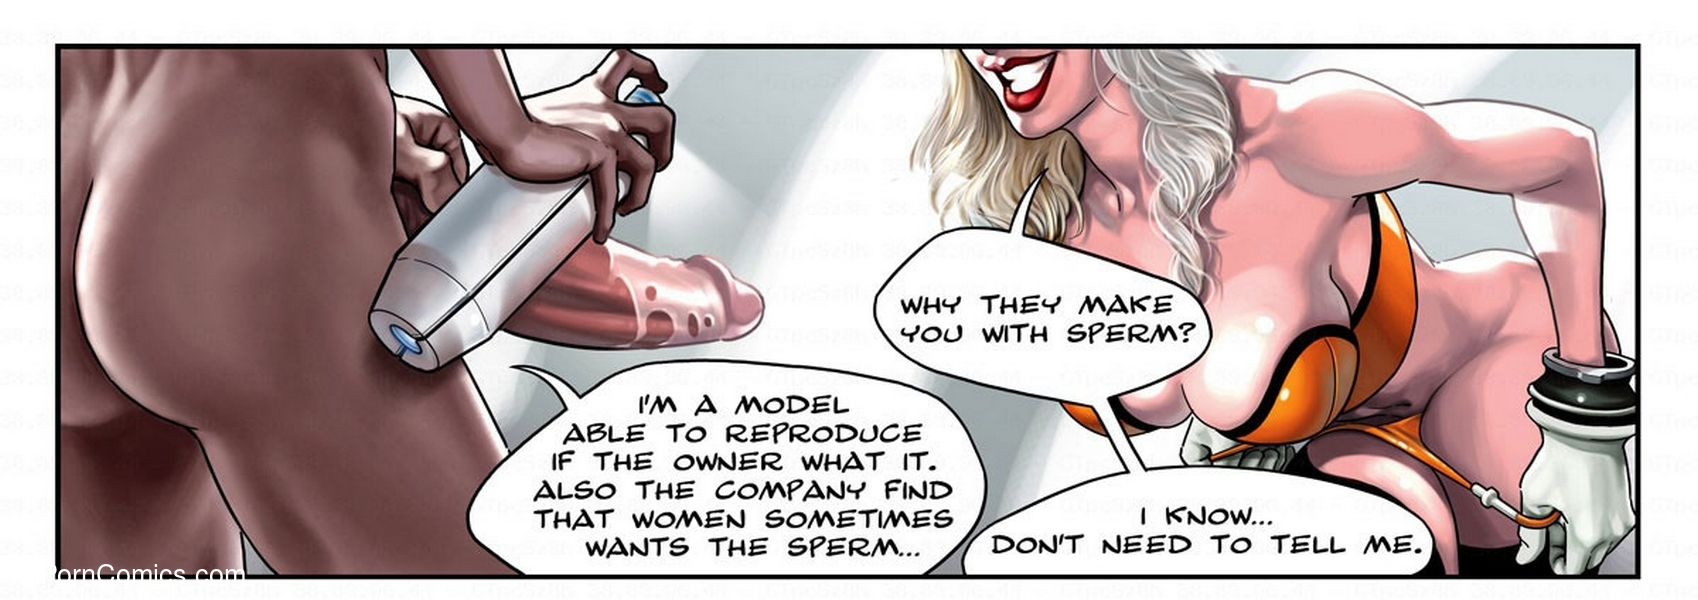 Captain Space5 free sex comic